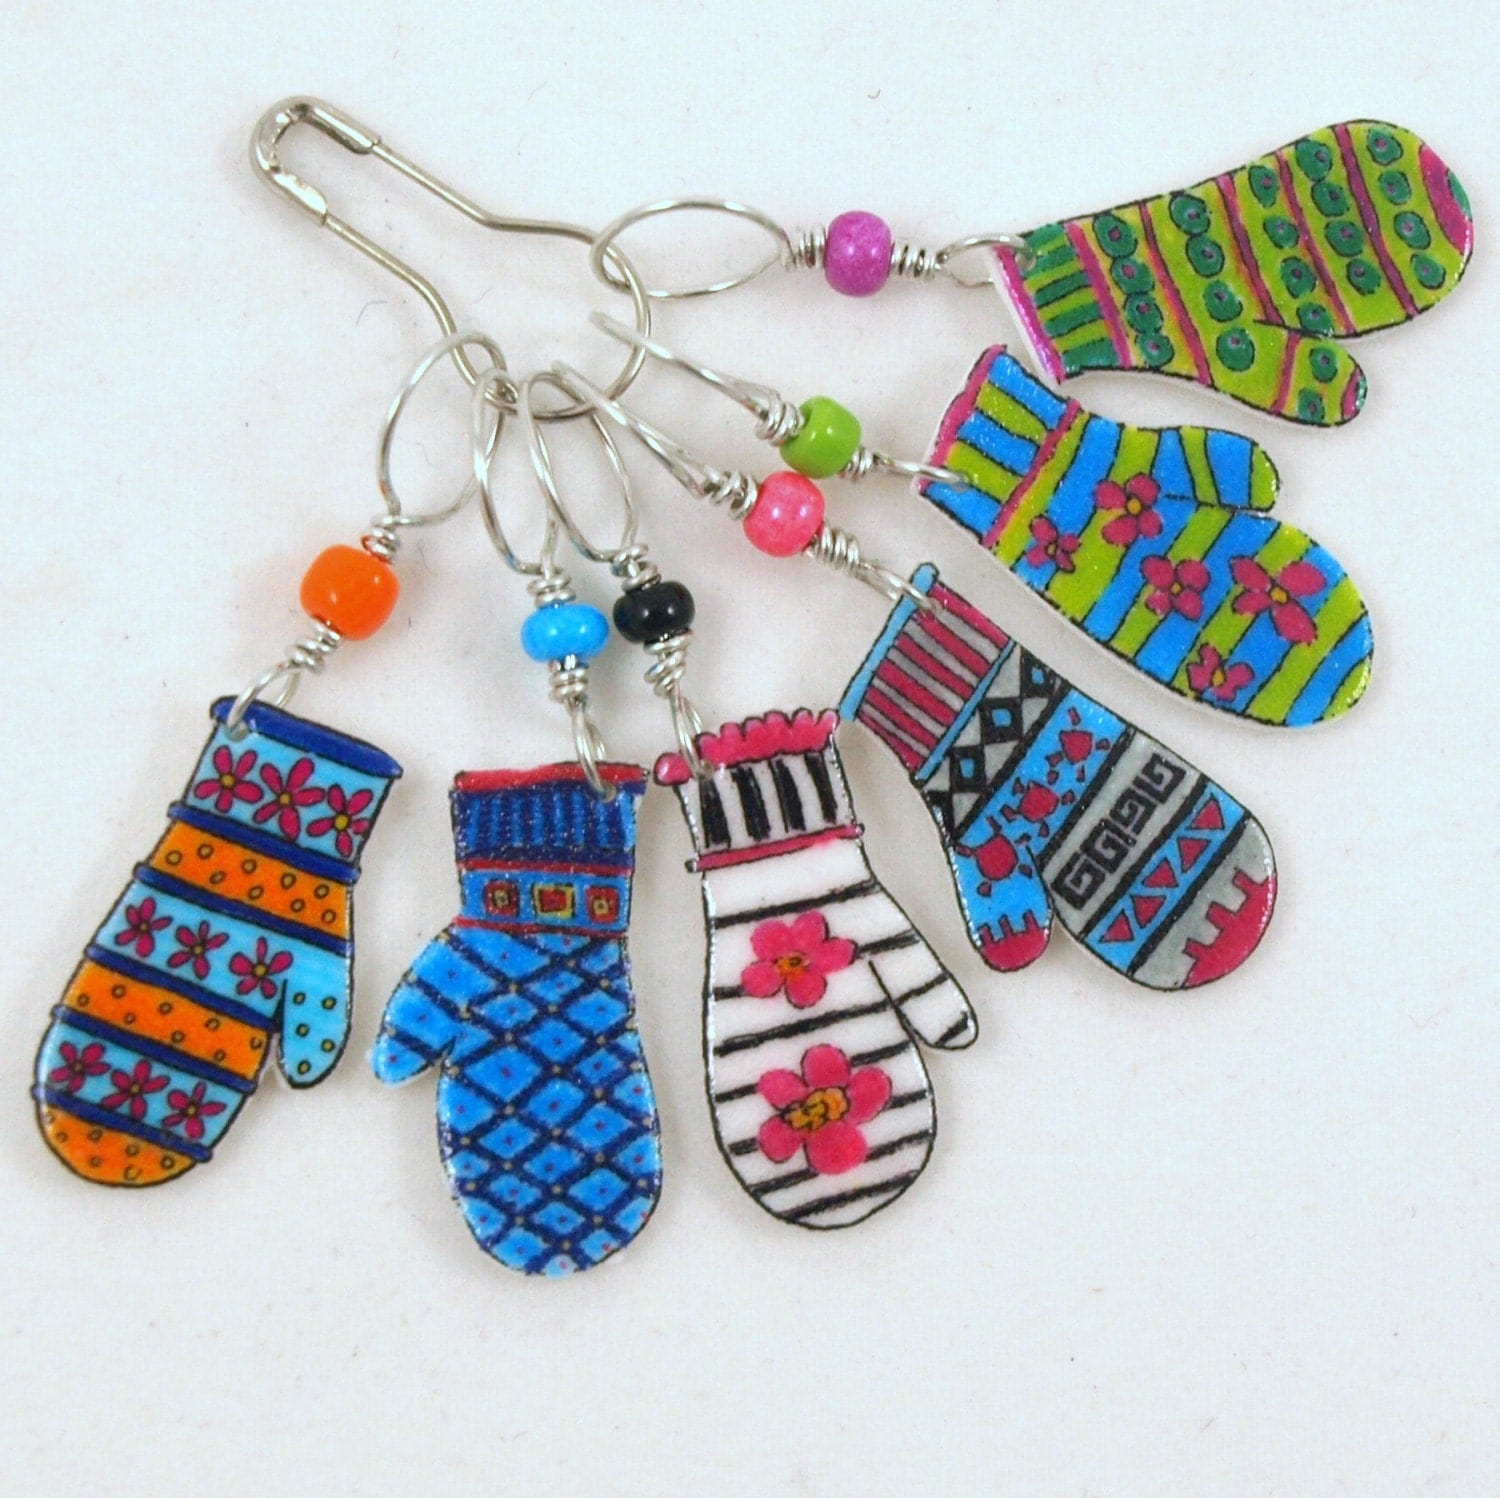 Knitting Markers Etsy : Colorful mitten stitch markers whimsical knitting